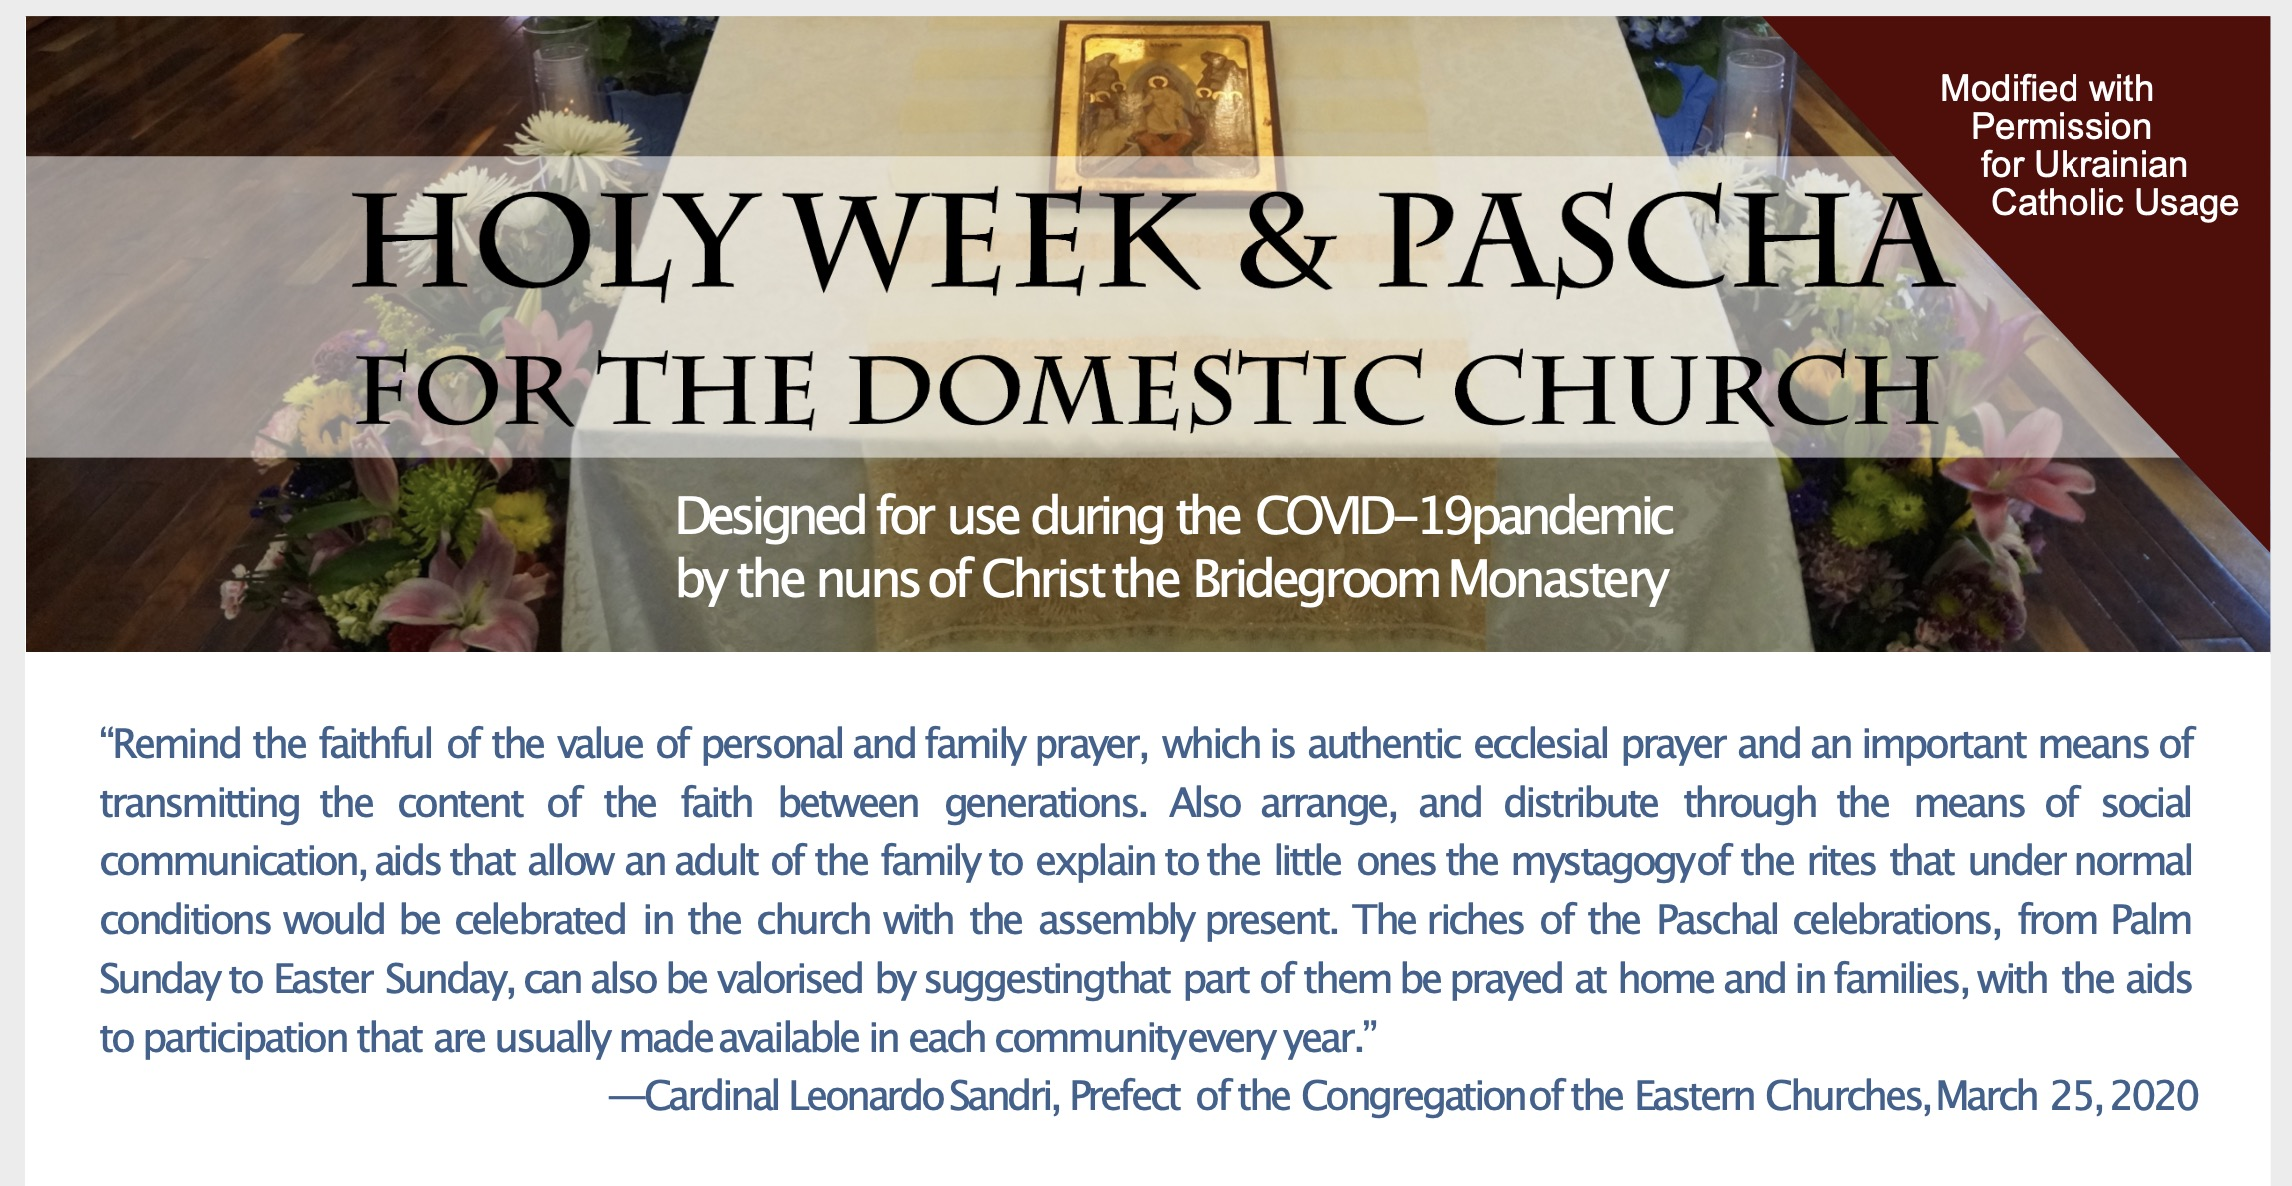 Domestic Church: Helpful Guide for Holy Week and Pascha (Easter)